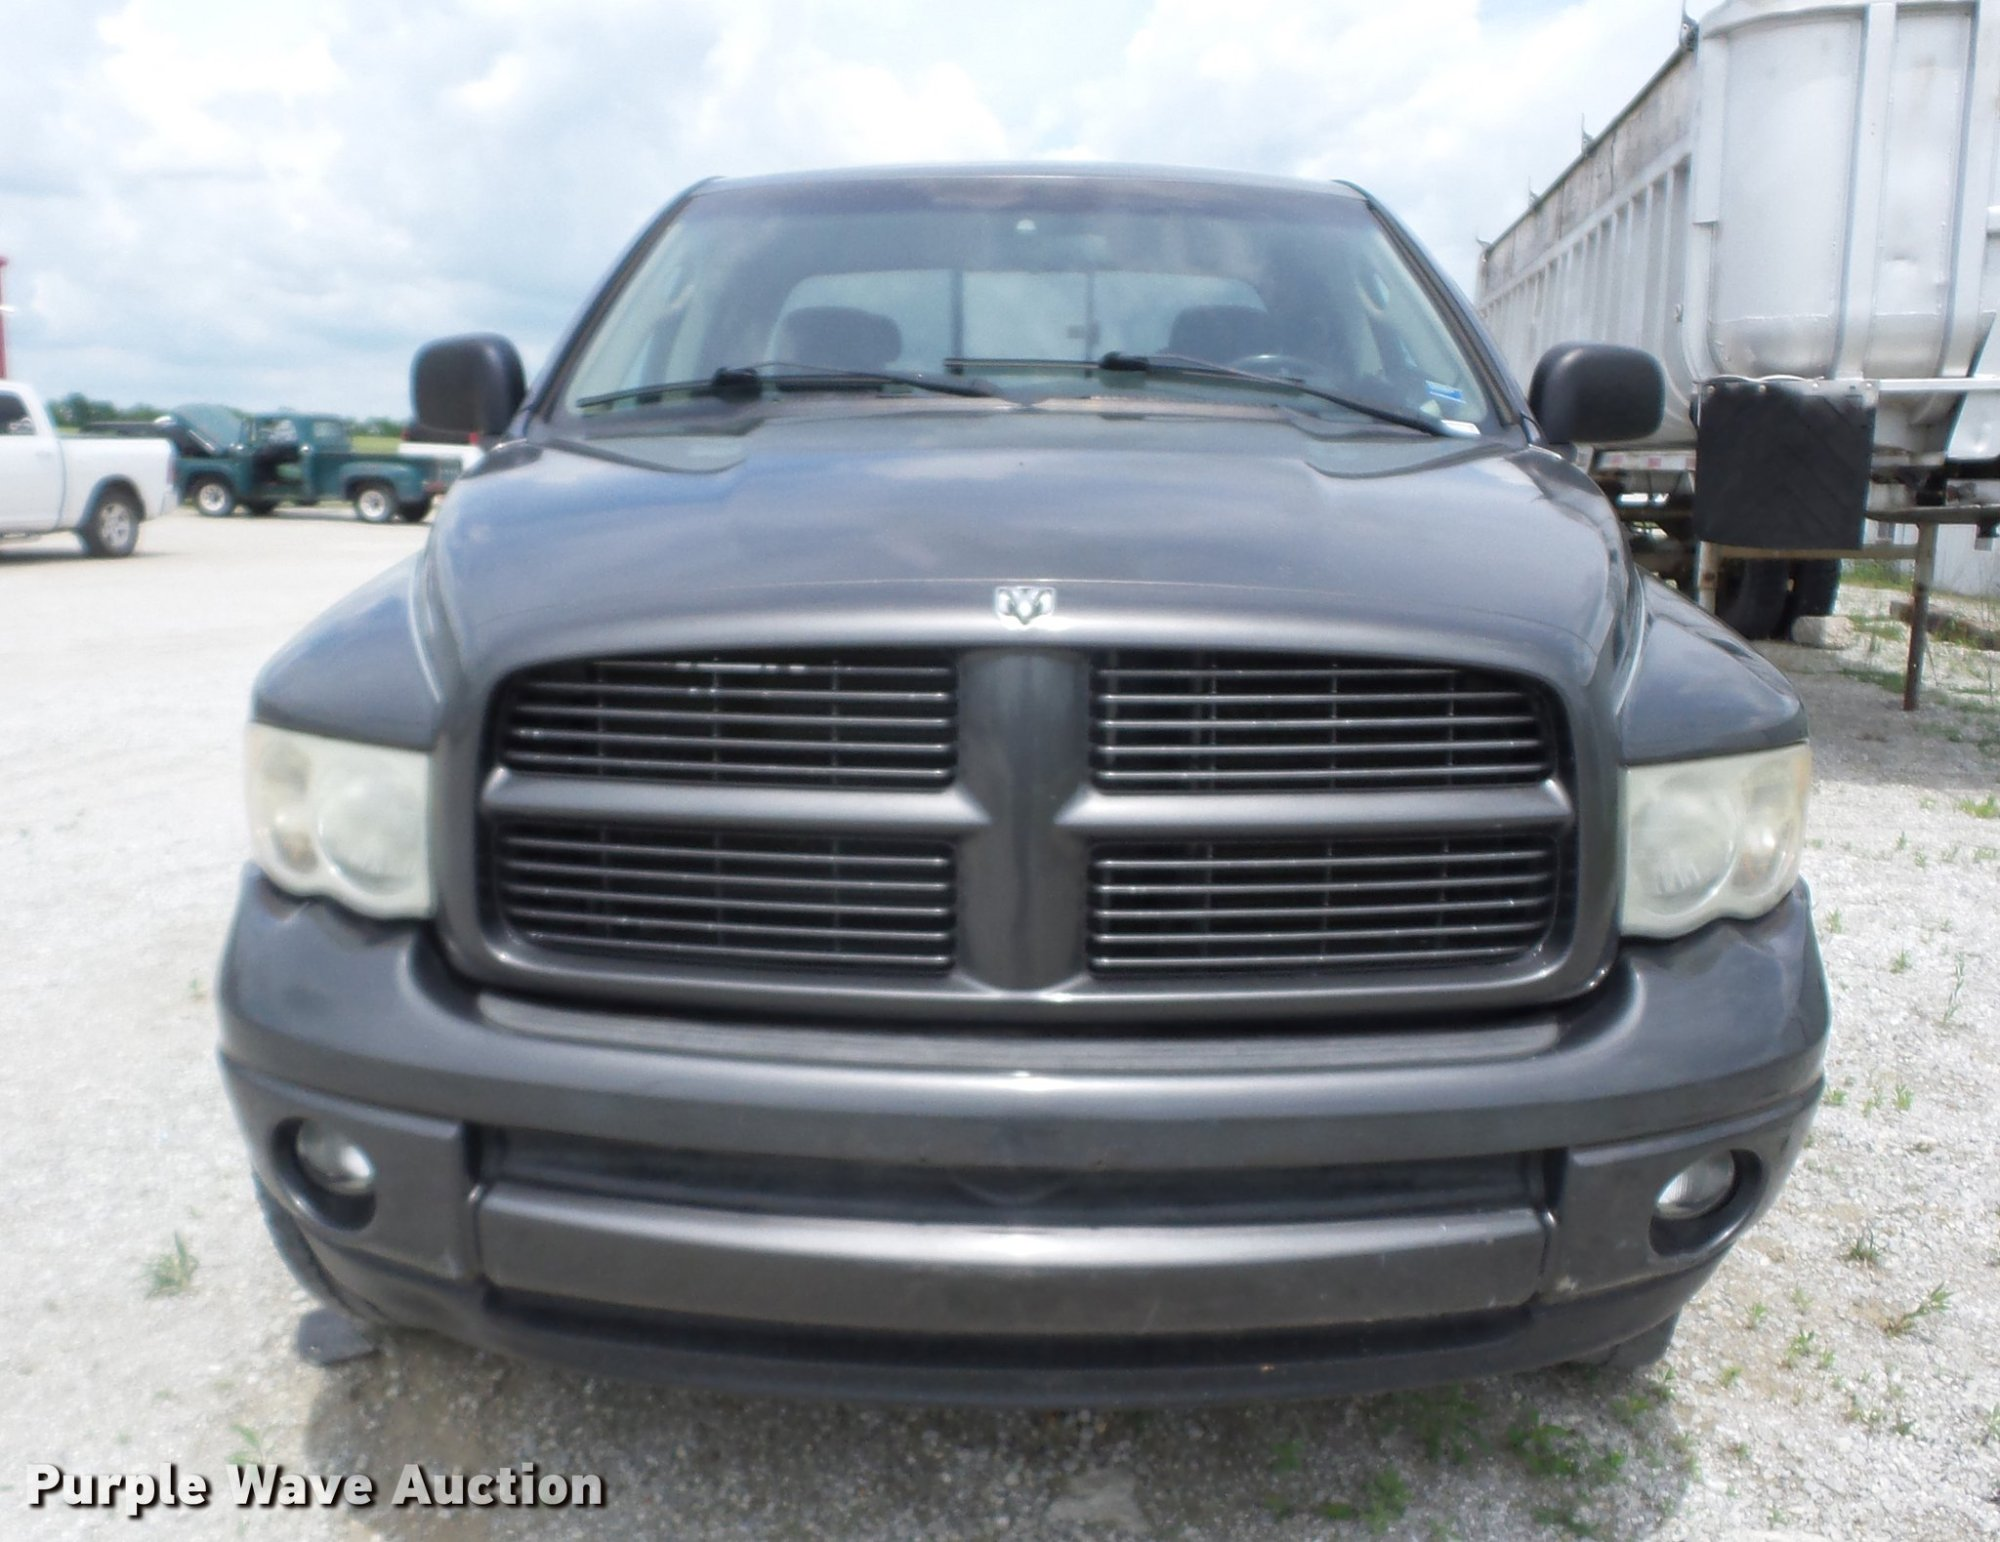 hight resolution of  2004 dodge ram 1500 quad cab pickup truck full size in new window